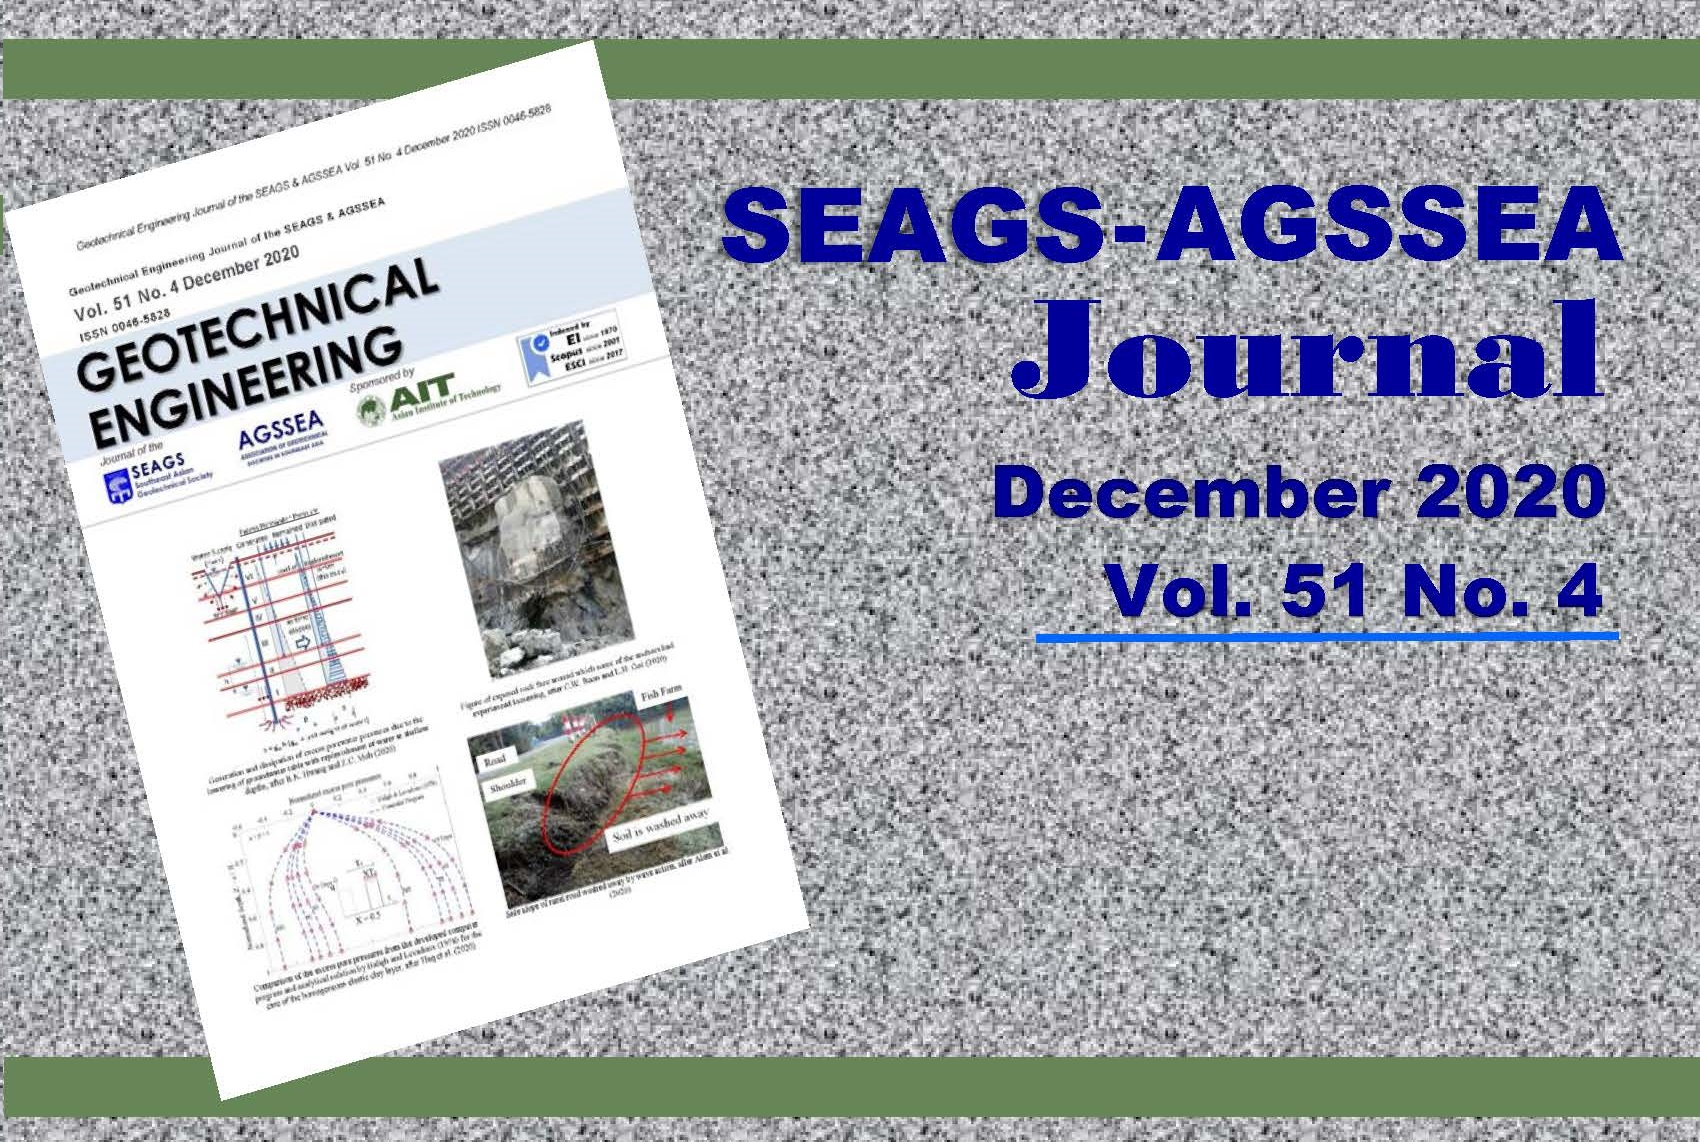 Geotechnical Engineering Journal of the SEAGS & AGSSEA Vol. 51 No. 4 December 2020 ISSN 0046-5828 Sponsored by:Asian Institute of Technology Contents Supporting the Observational Approach in Construction through Bayesian […]